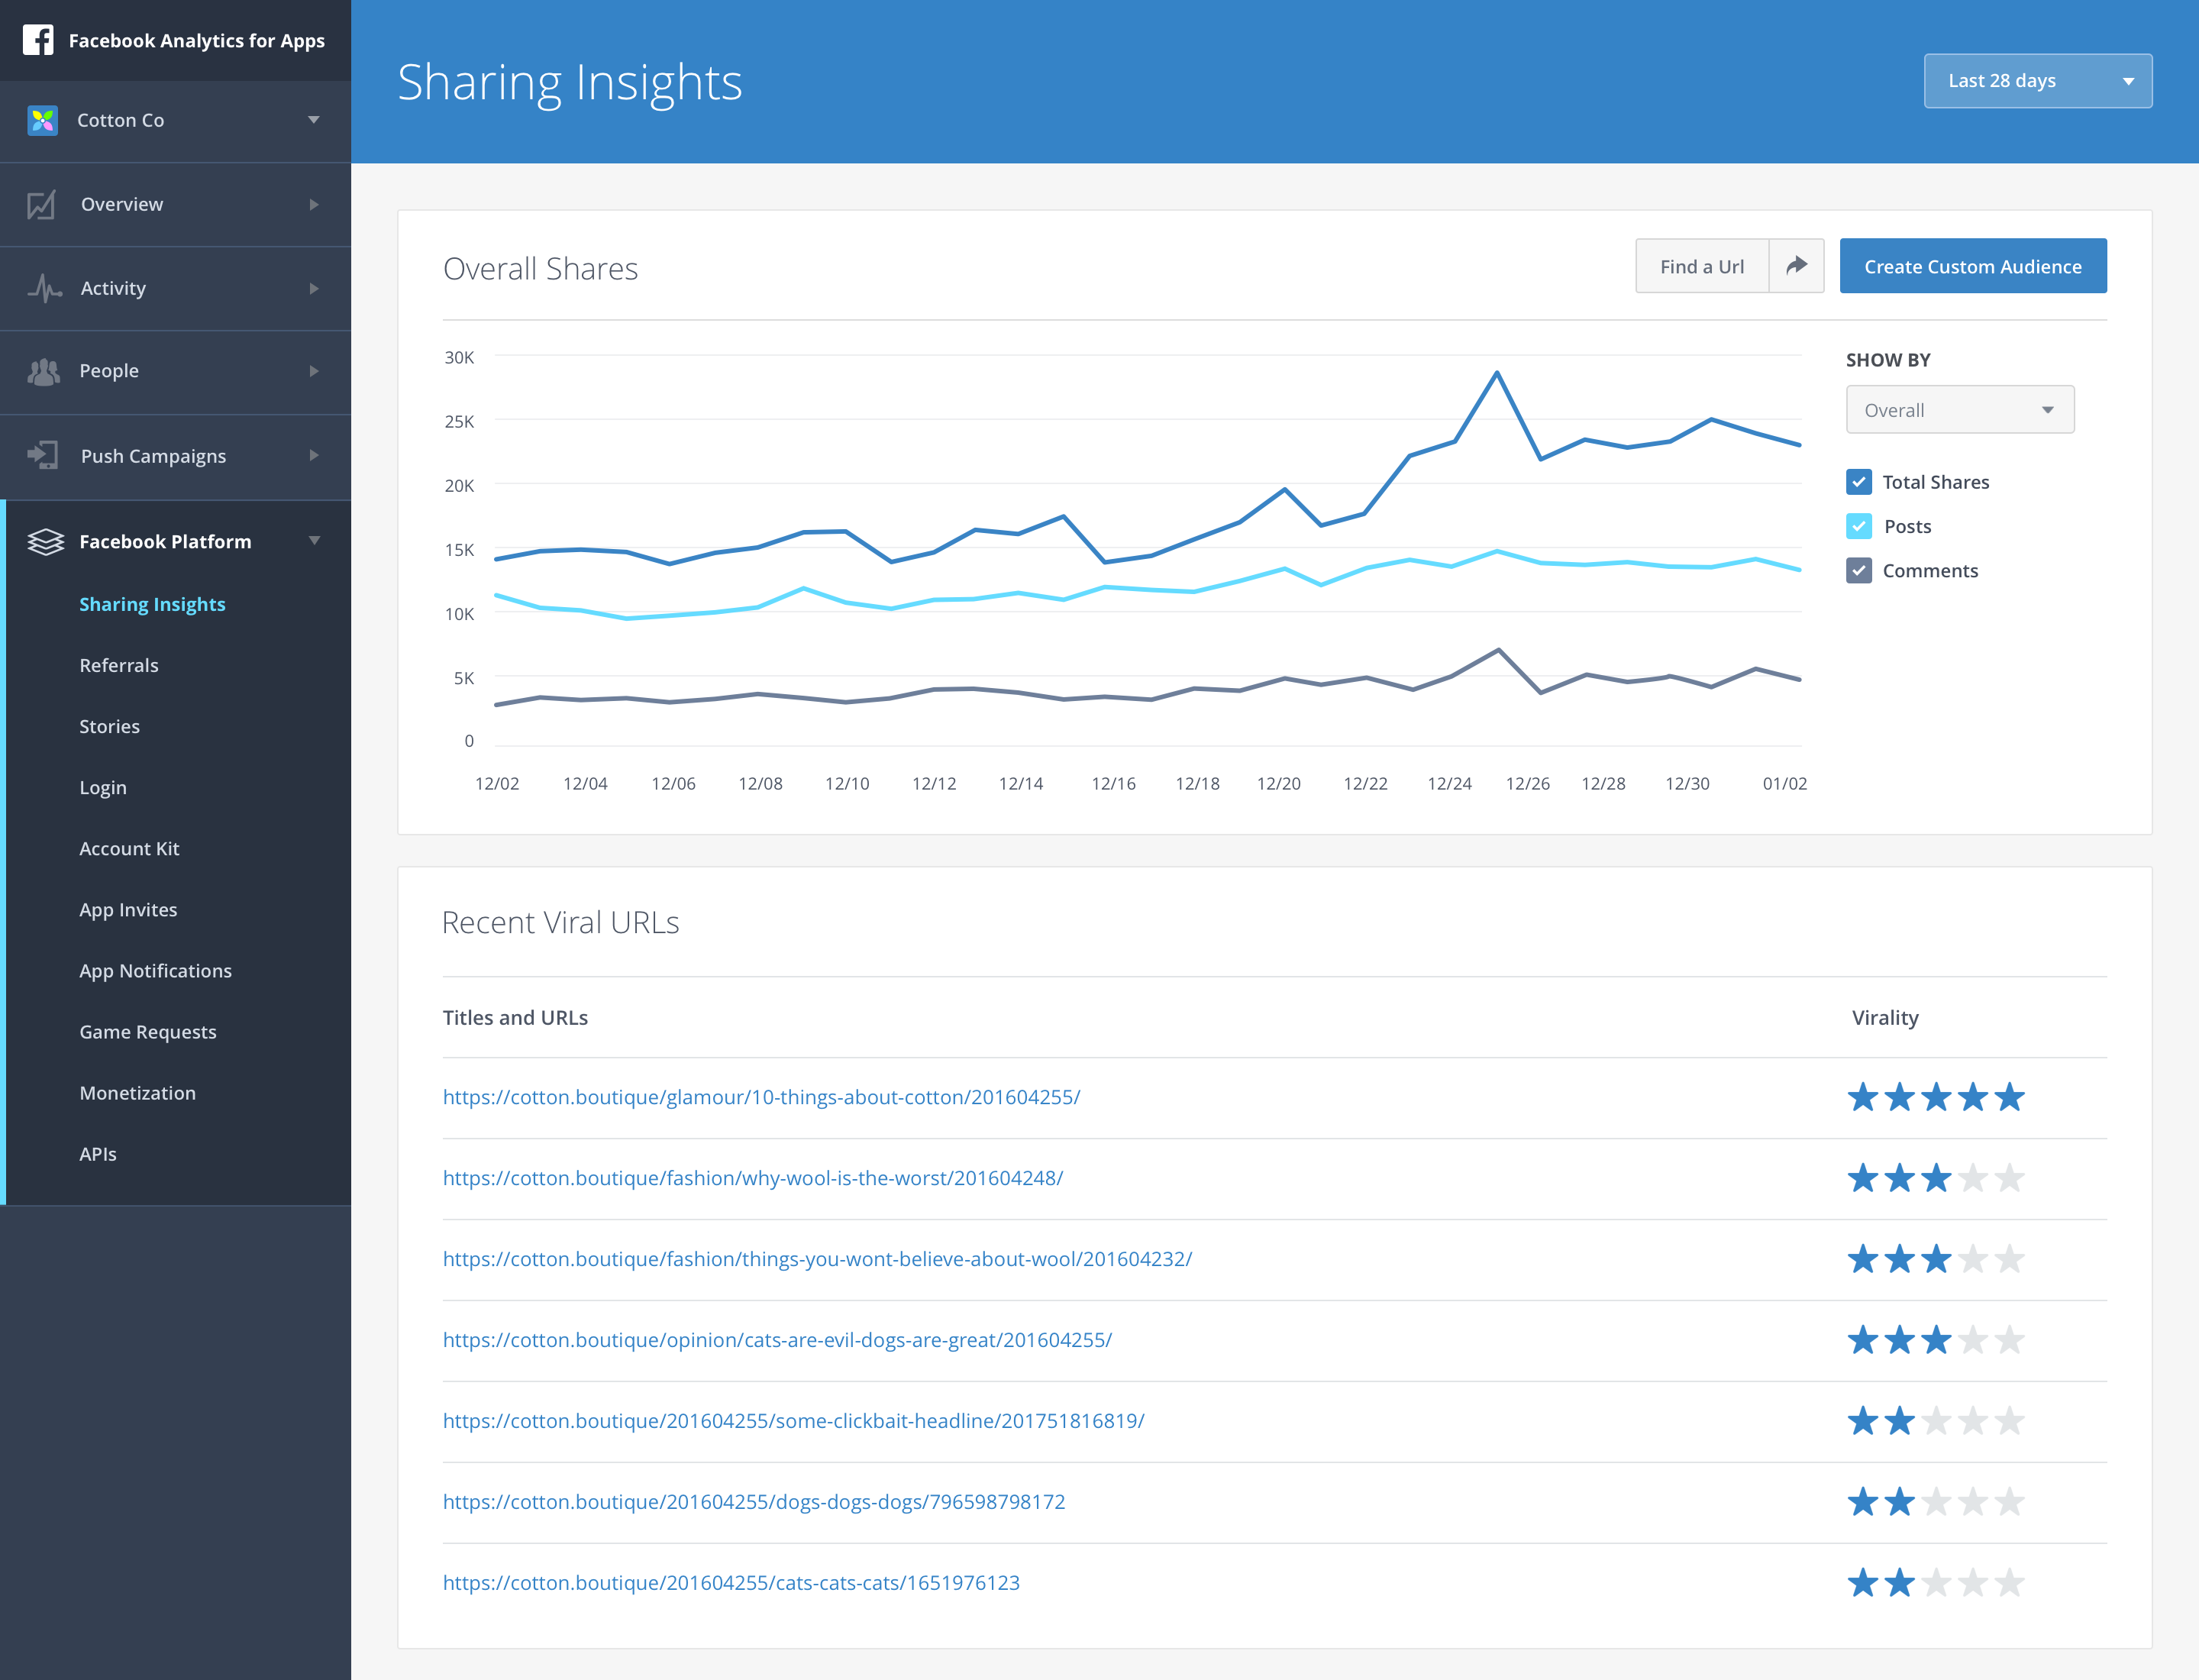 Facebook Analytics for Apps sharing insights